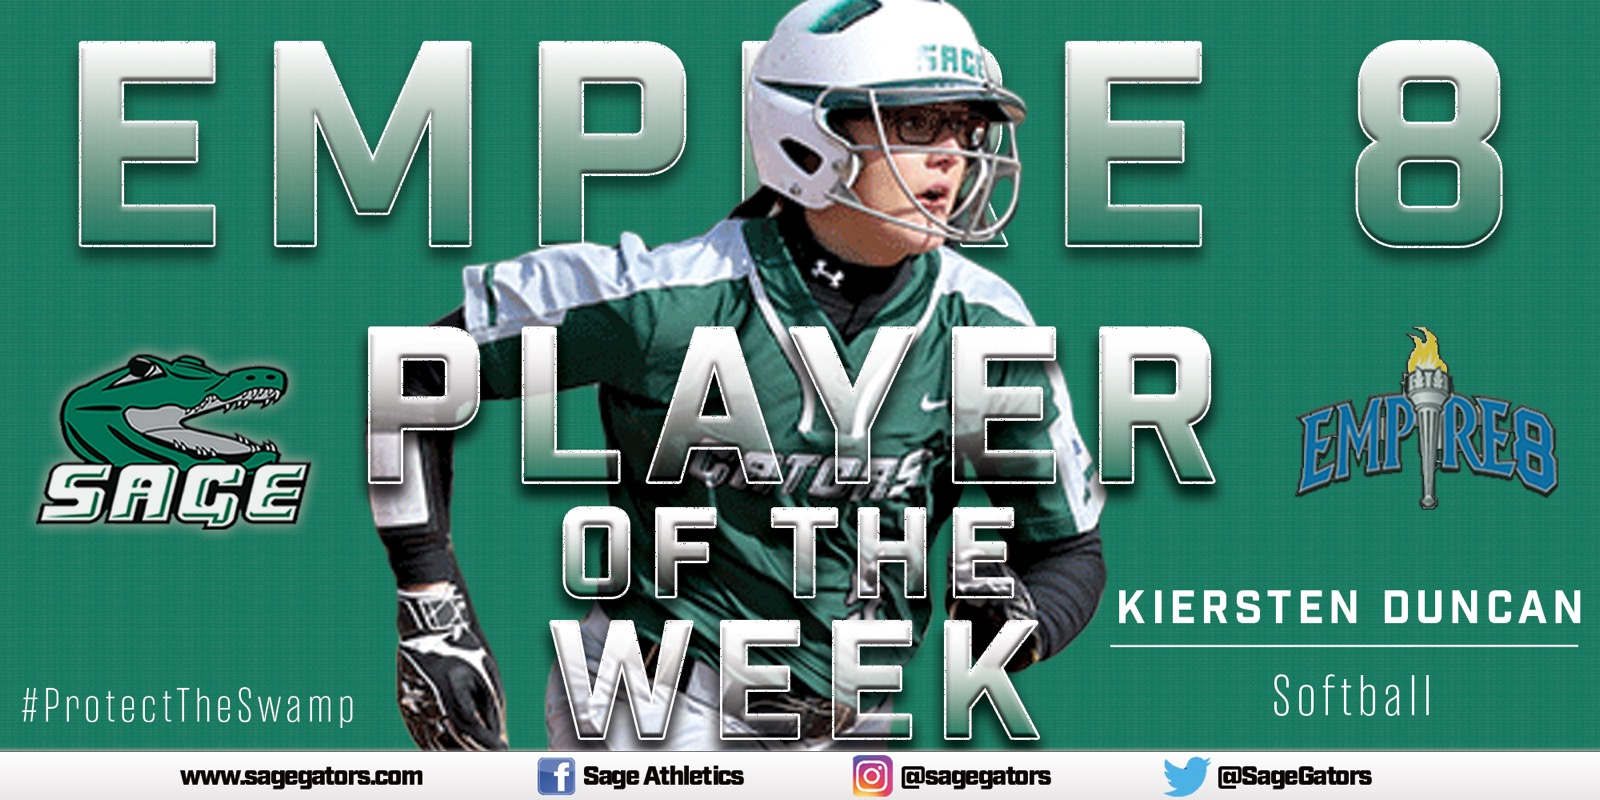 Duncan selected Empire 8 Softball Player of the Week